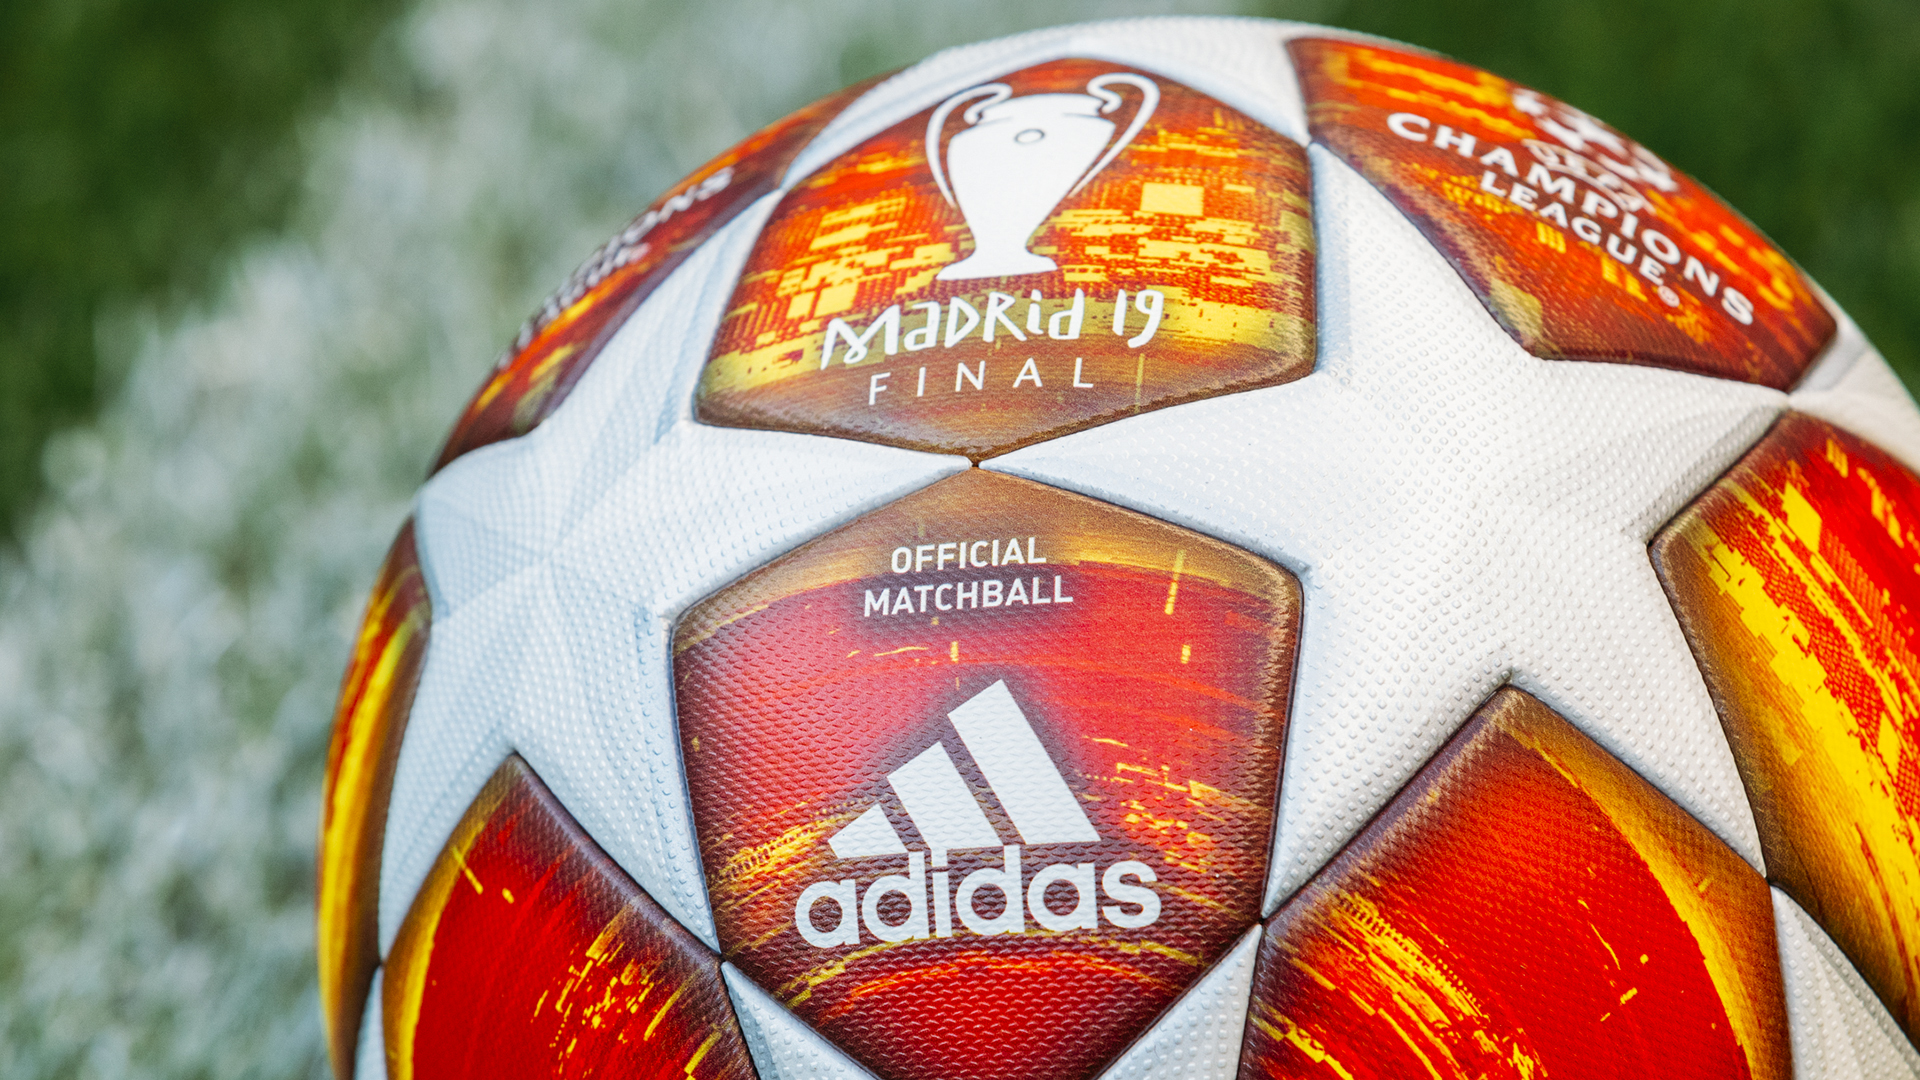 Adidas unveils official ball for Madrid Champions League final ...